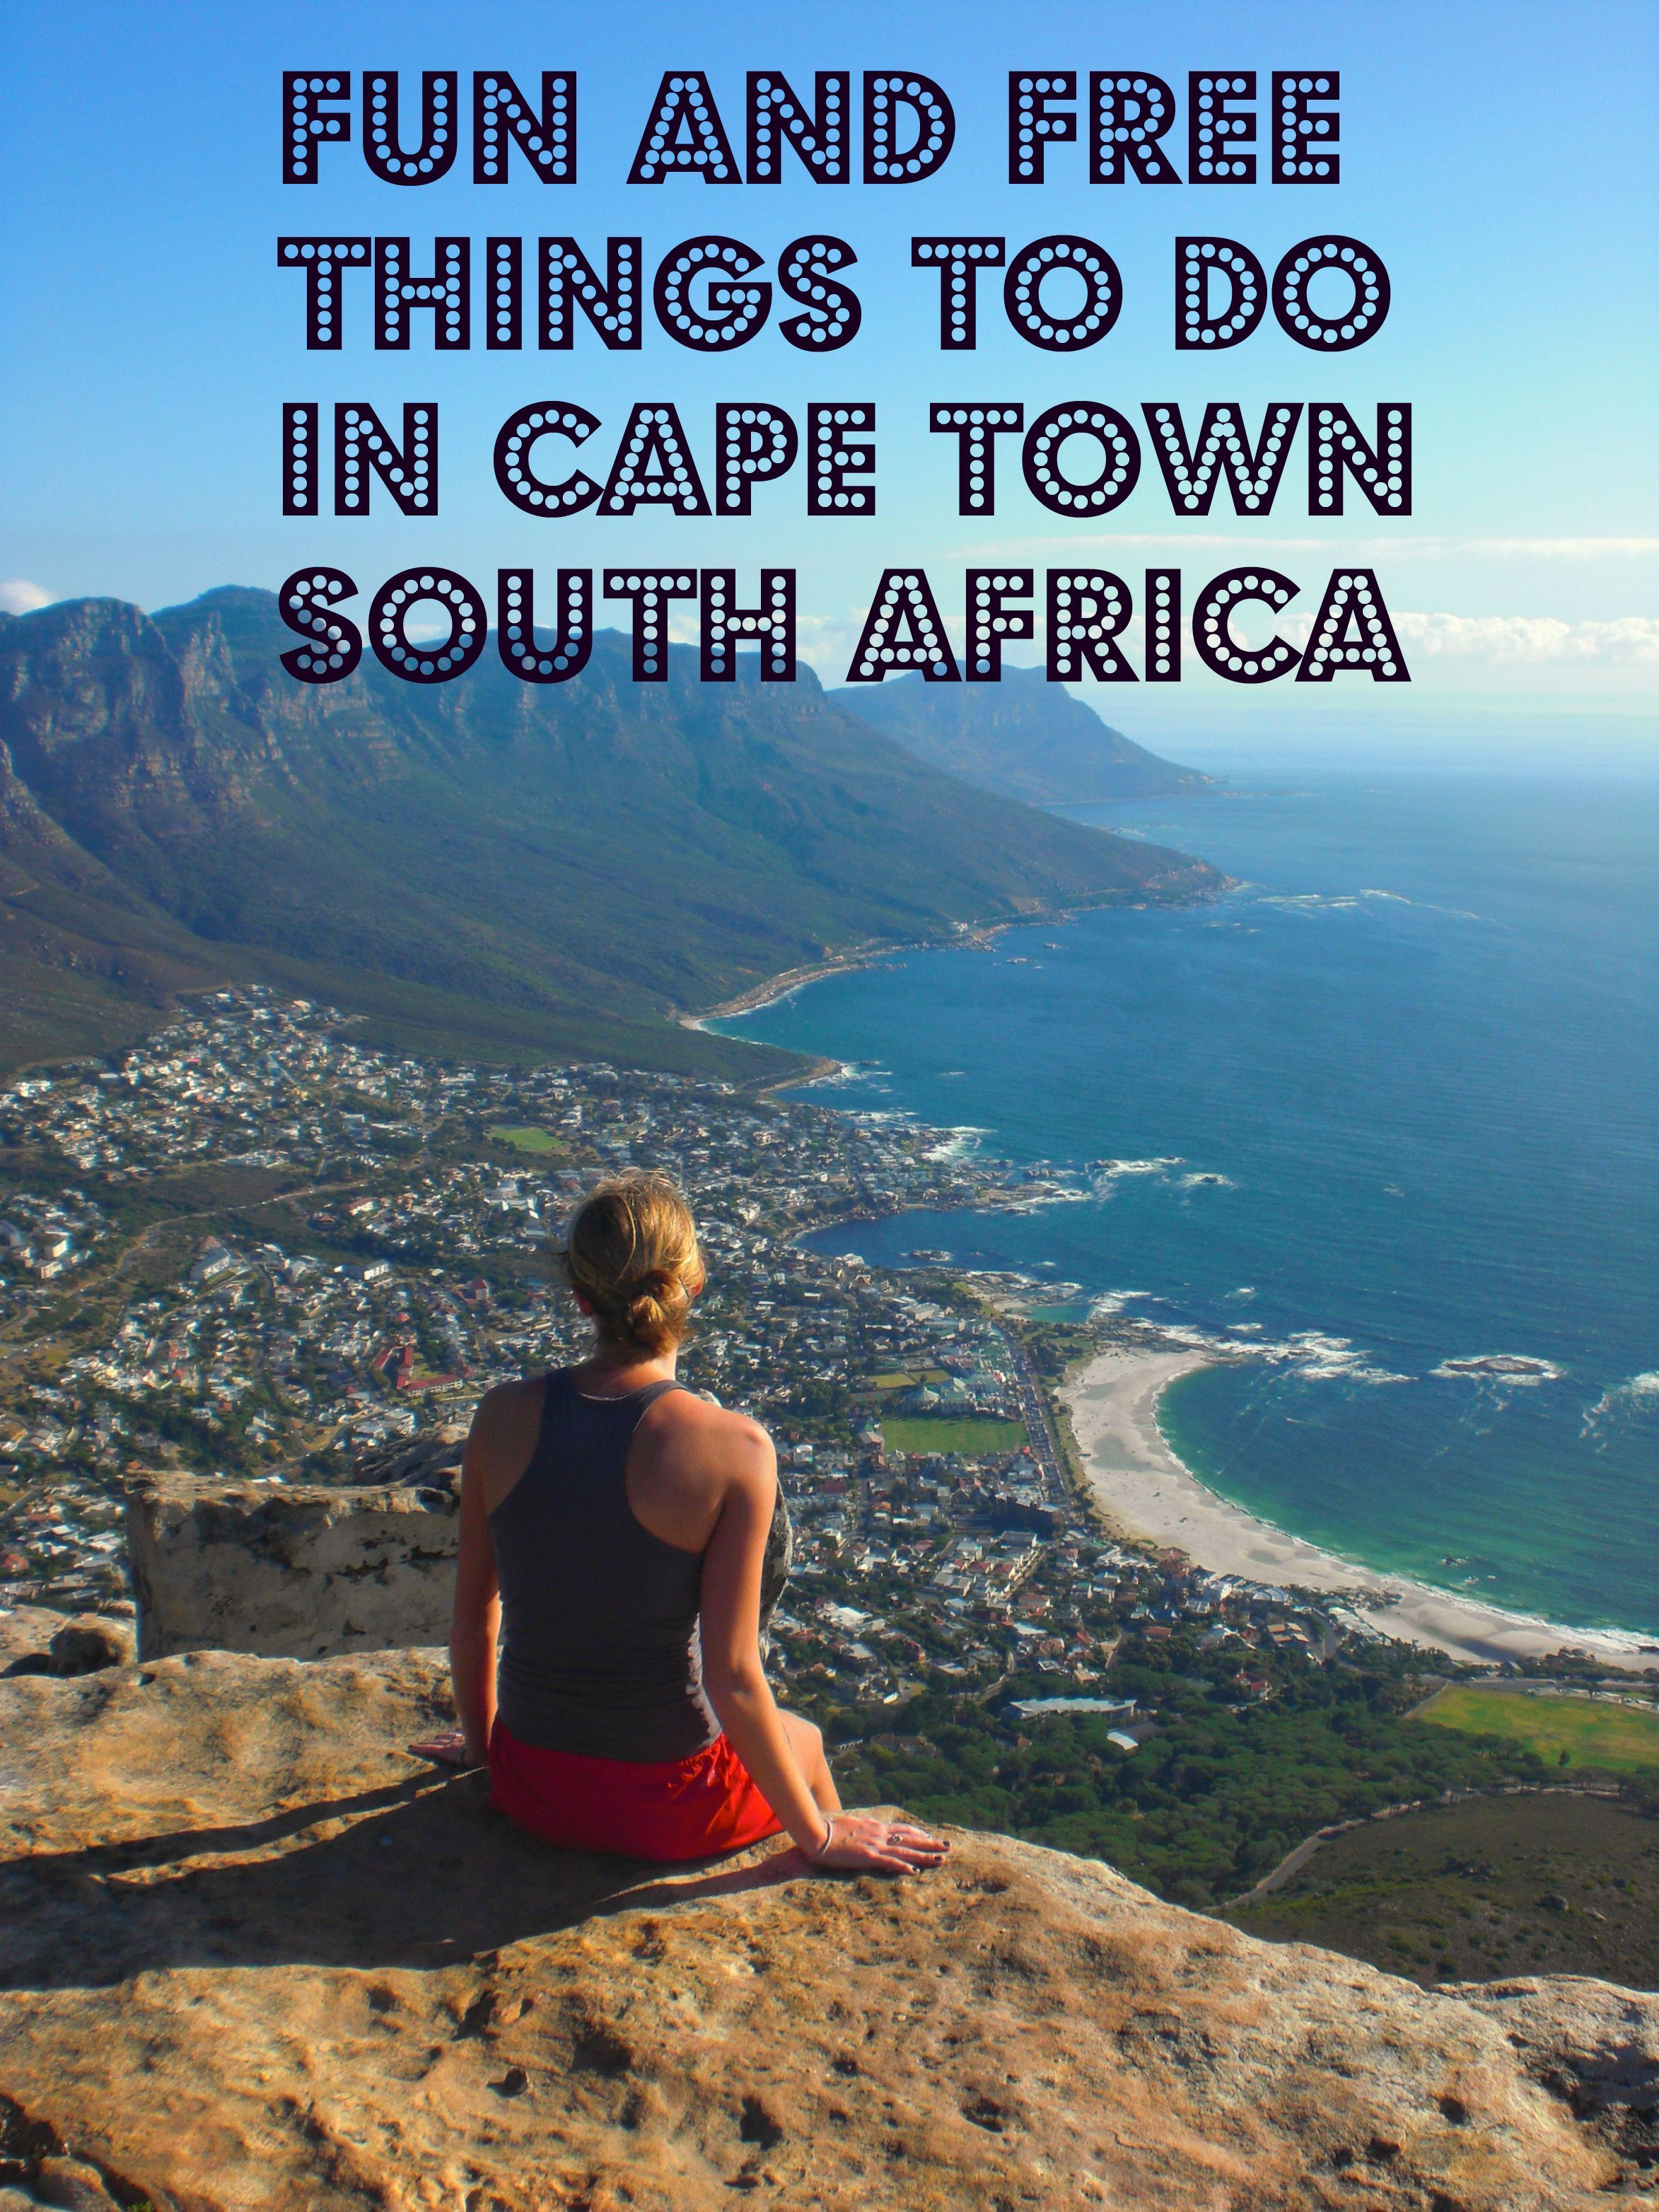 Cape Town has the highest number of Blue Flag beaches in